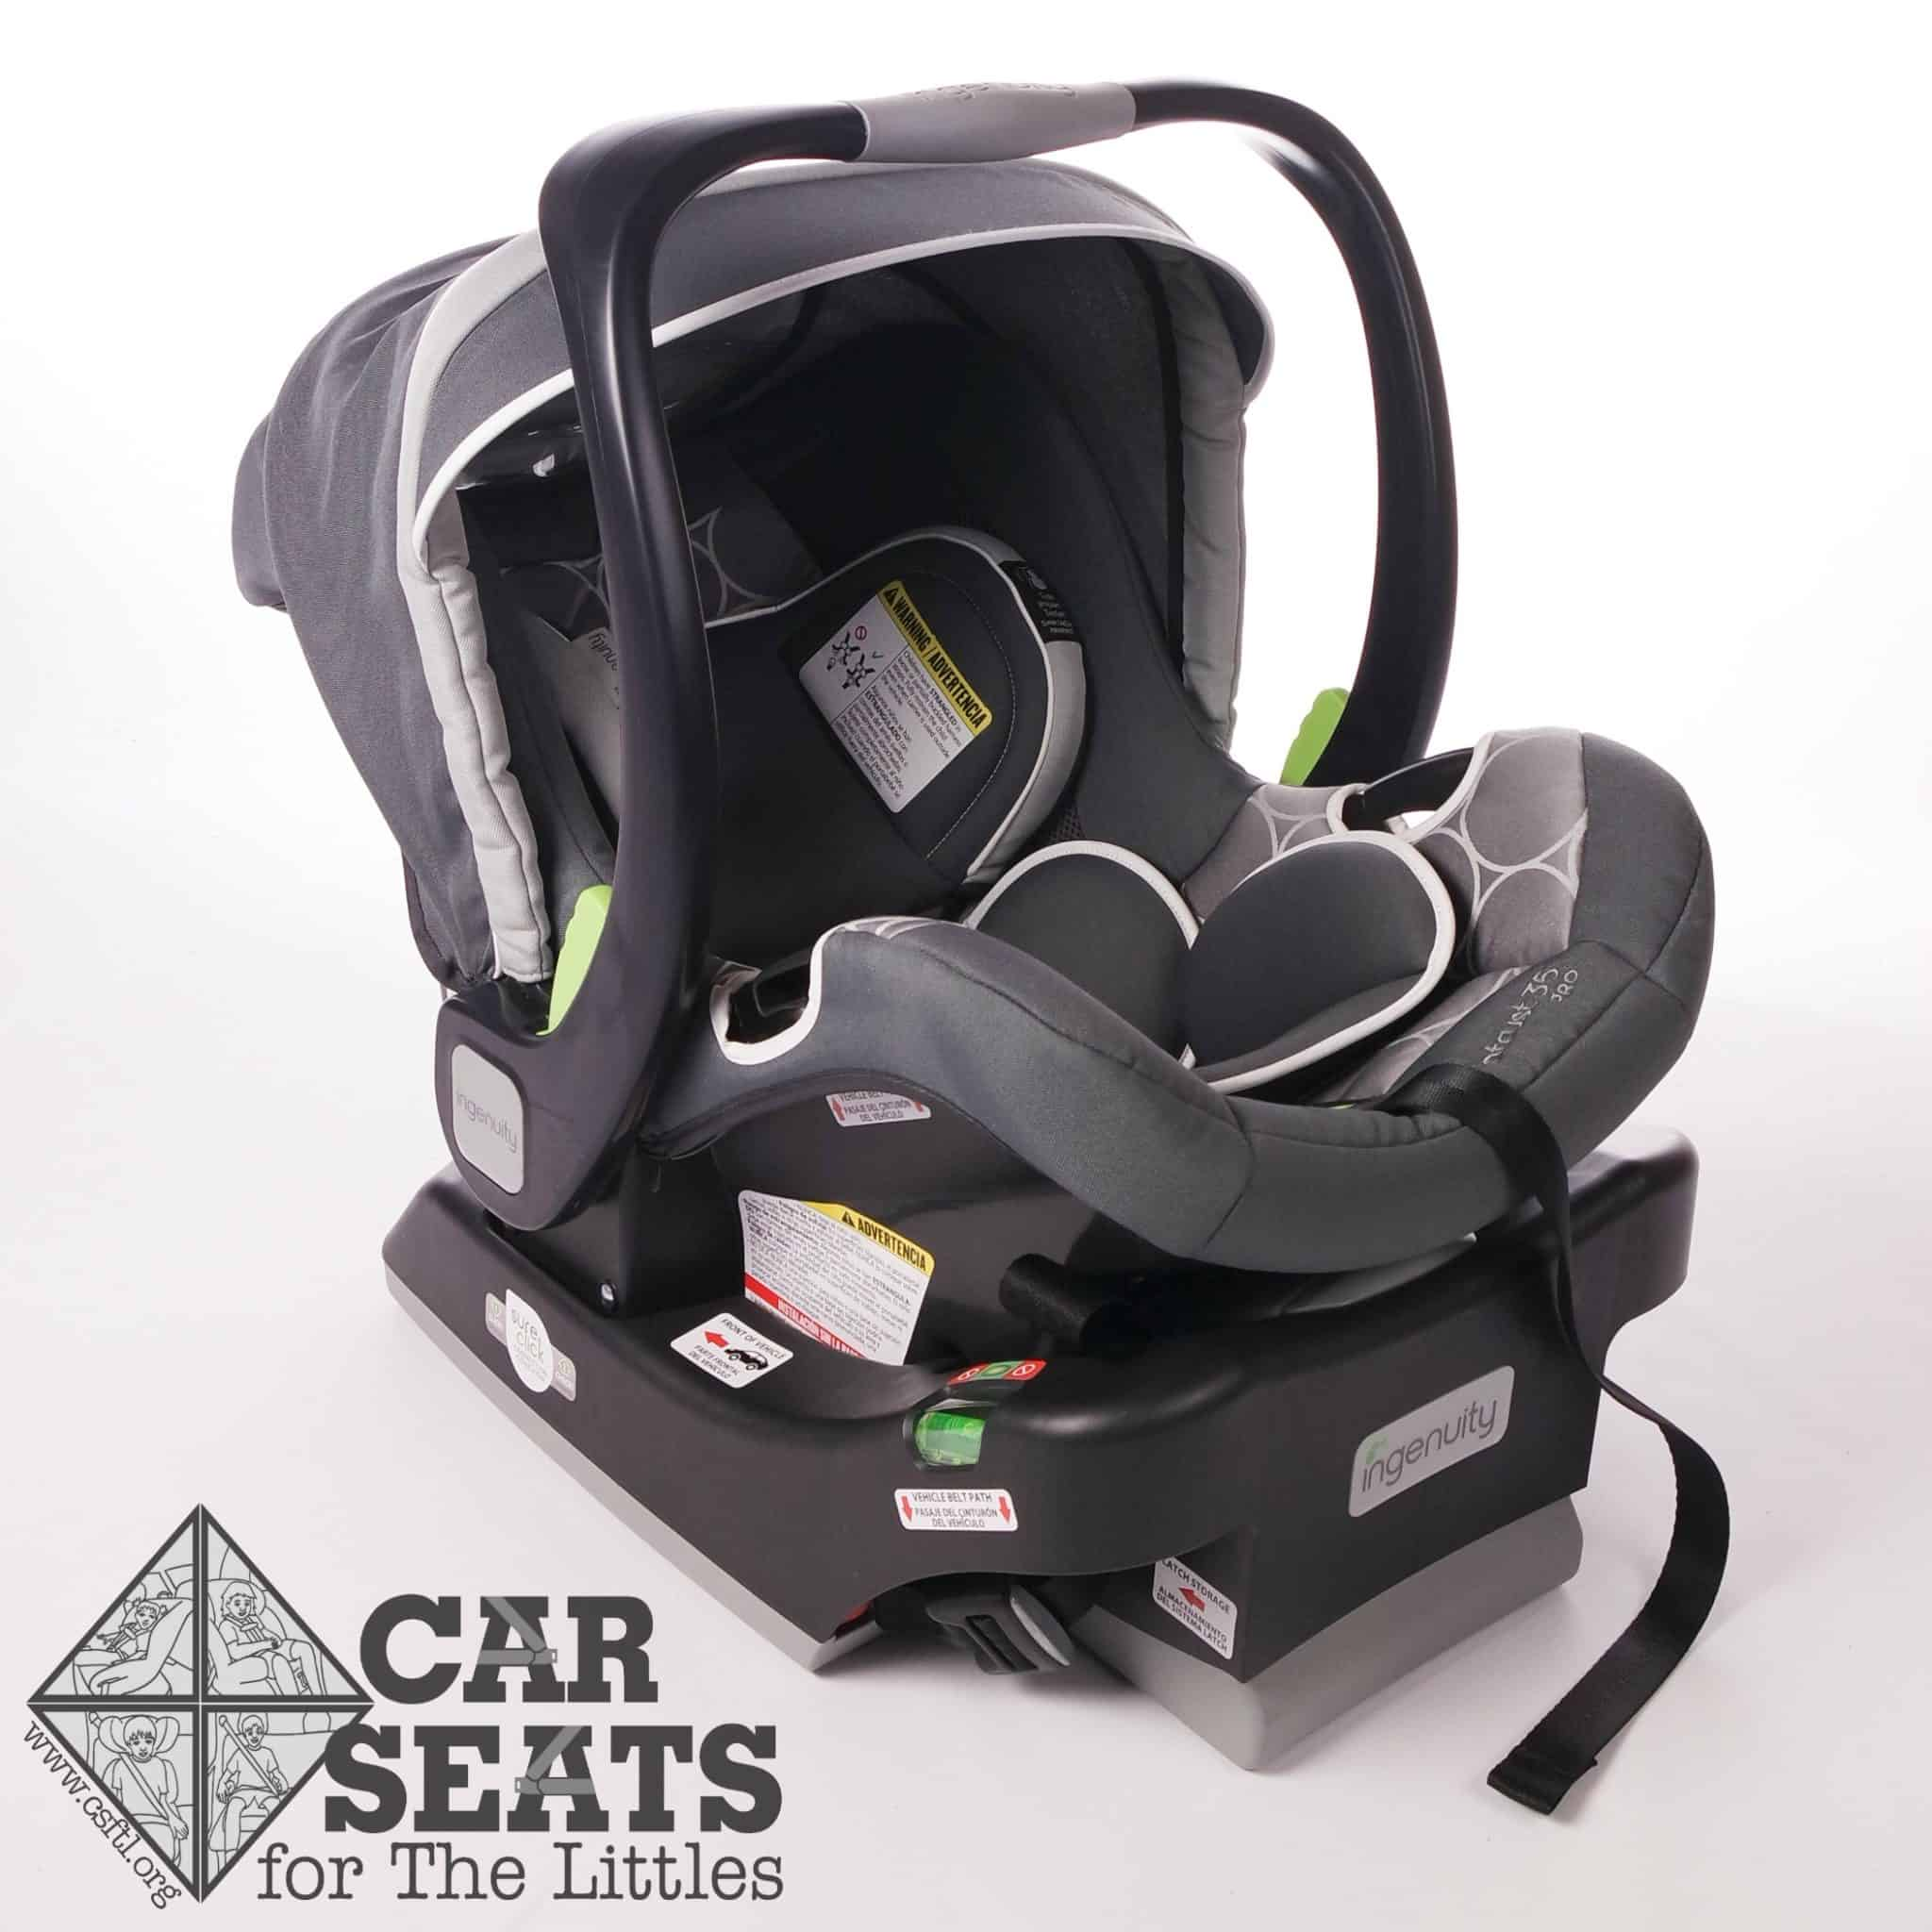 ingenuity high chair canada reviews verner panton intrust 35 pro review car seats for the littles